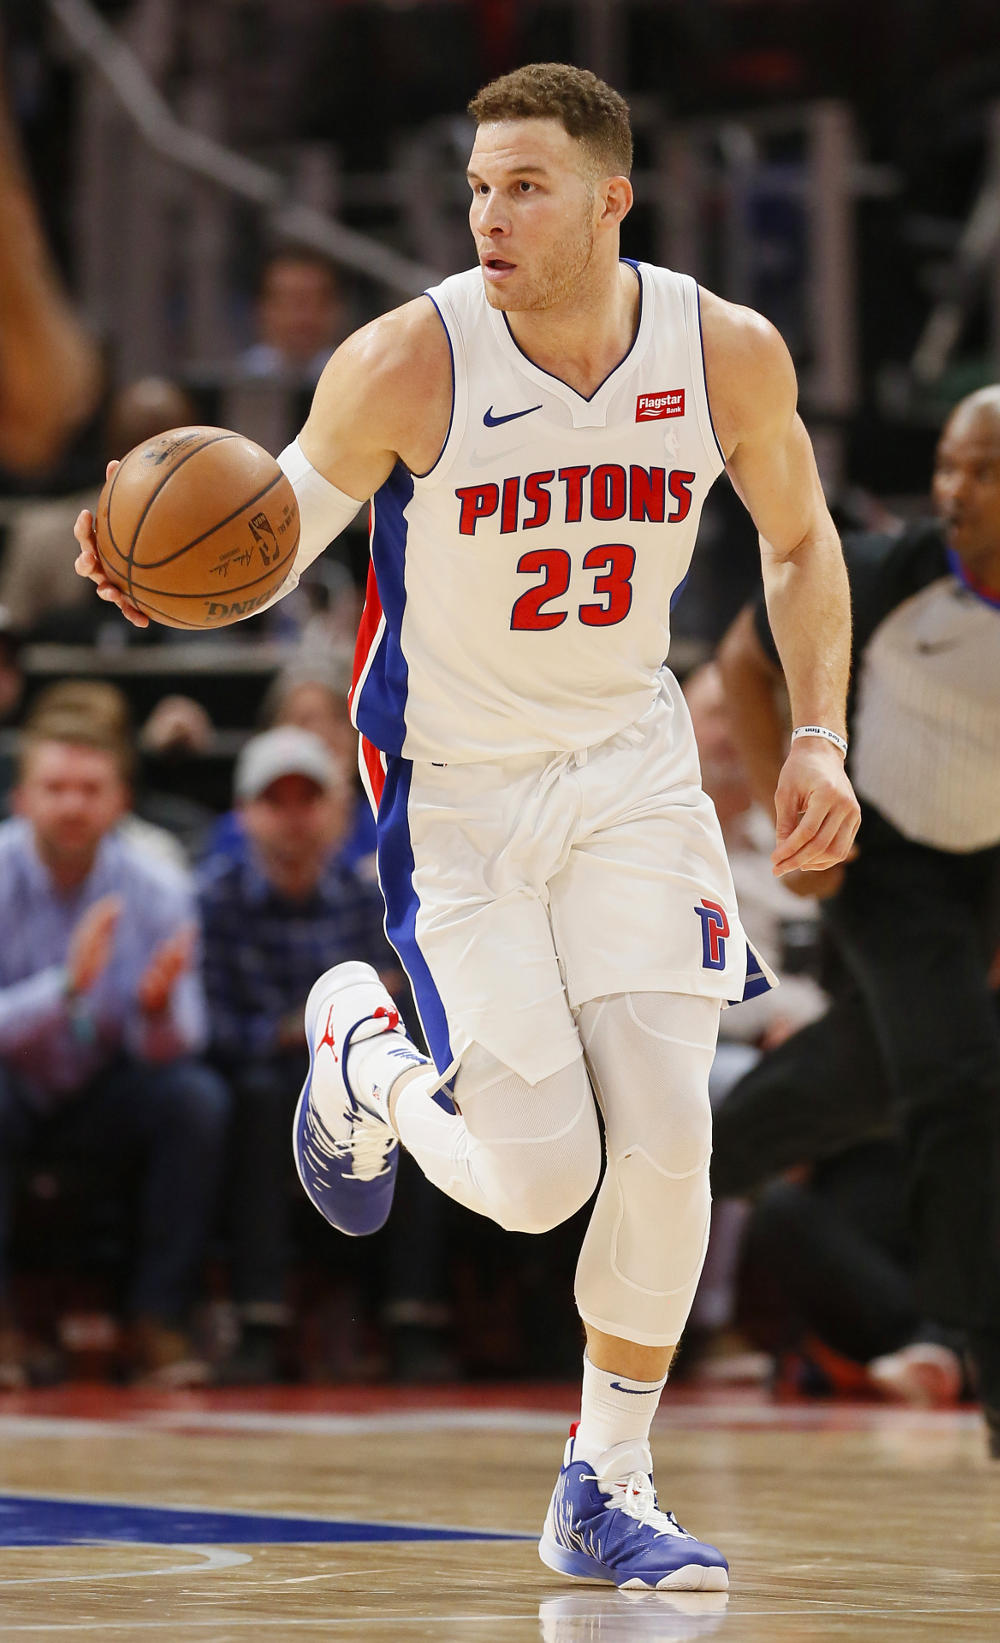 Blake Griffin brings the ball up court